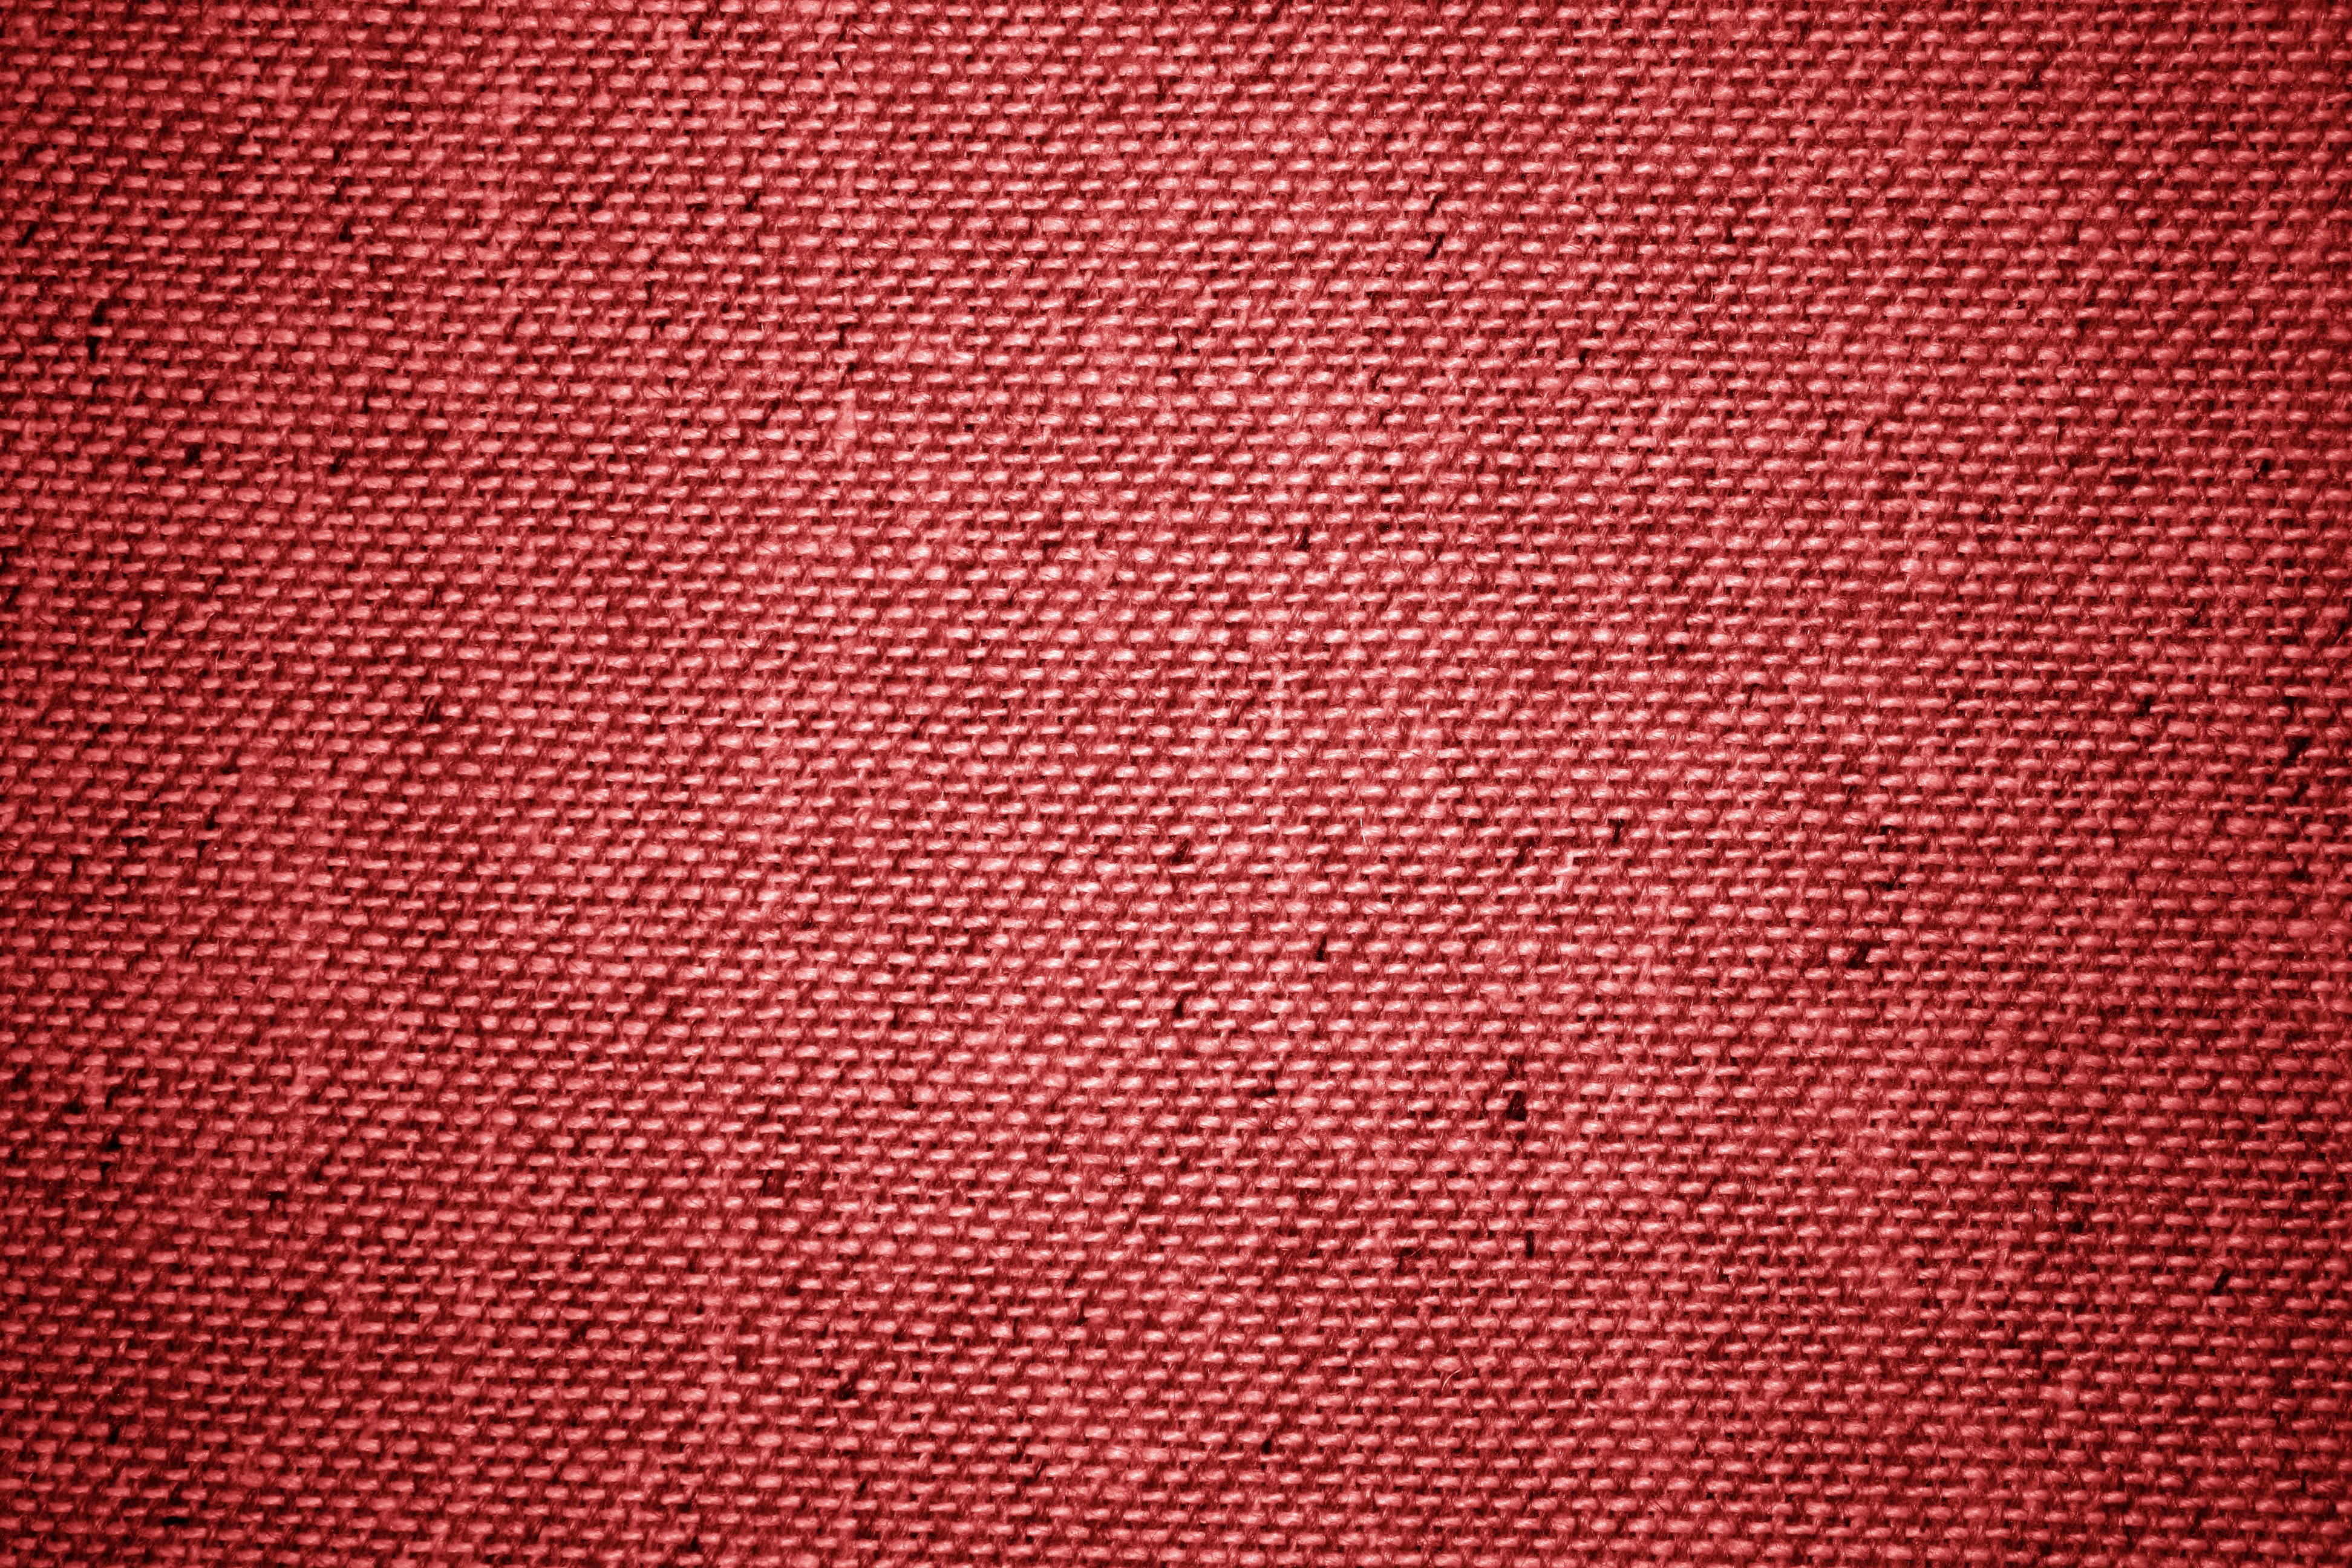 red upholstery fabric close up texture